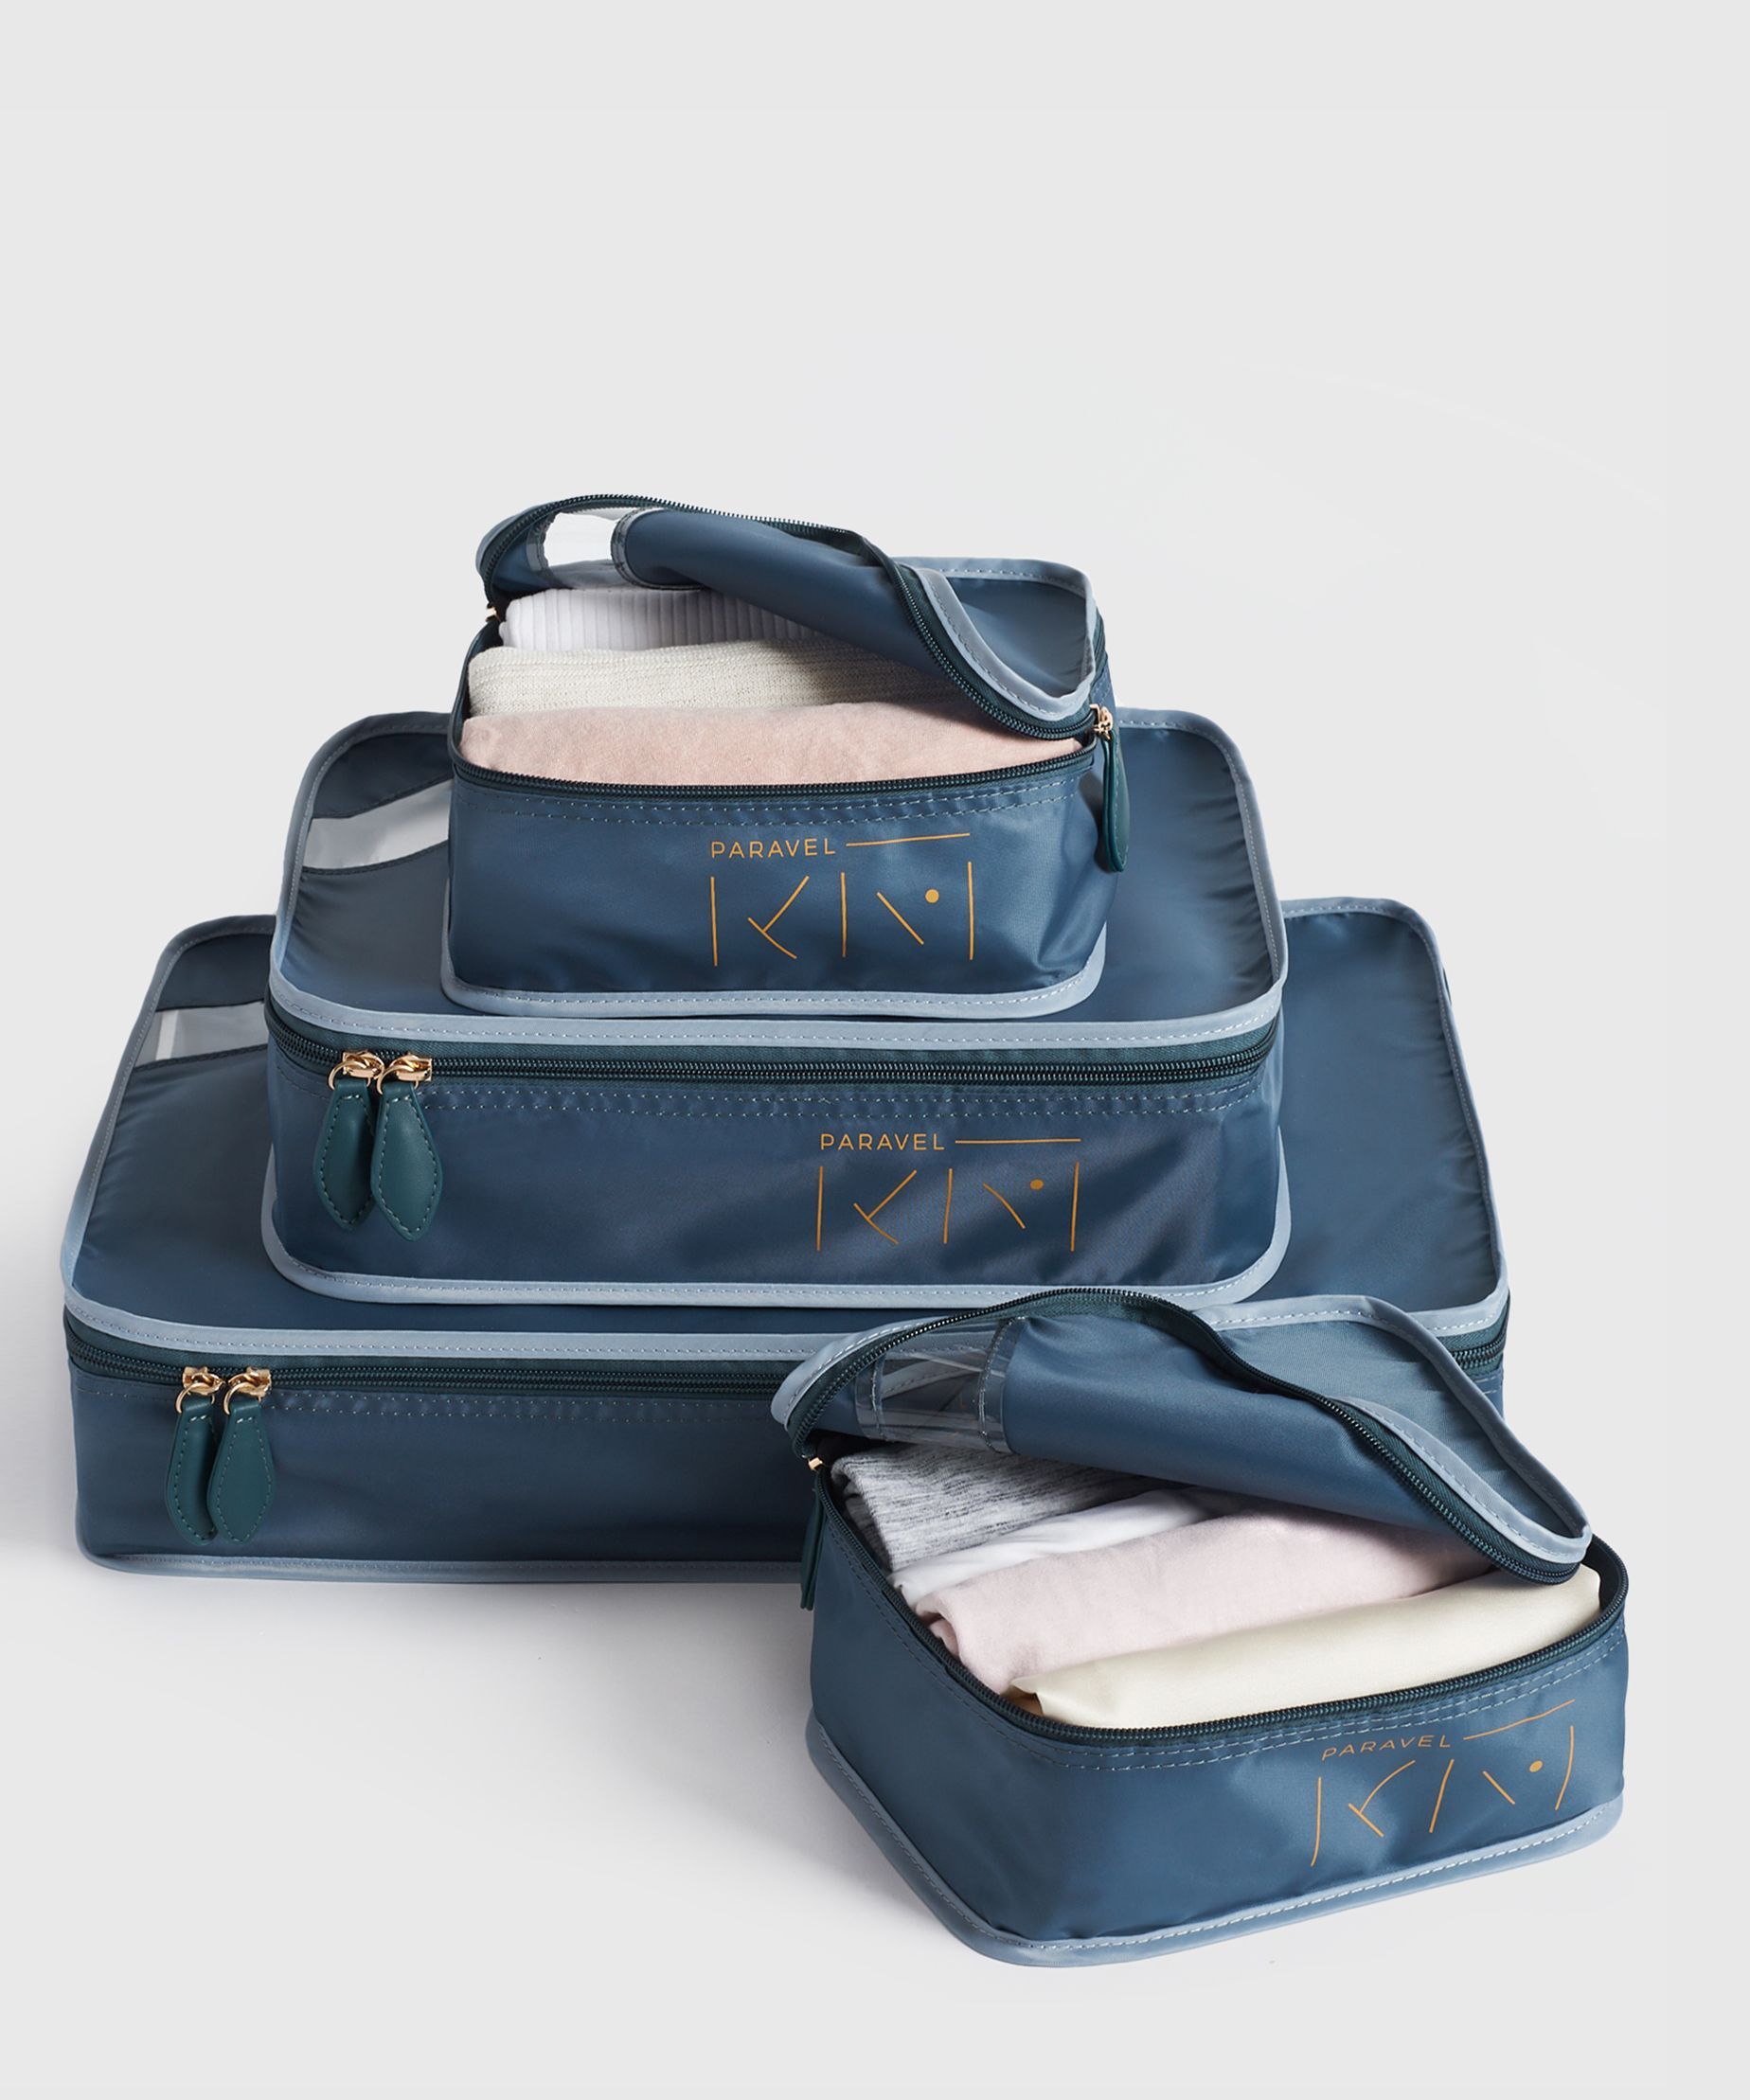 The Marie Kondo x Paravel Collaboration Is Here to Make Your Suitcase More Organized This Summer